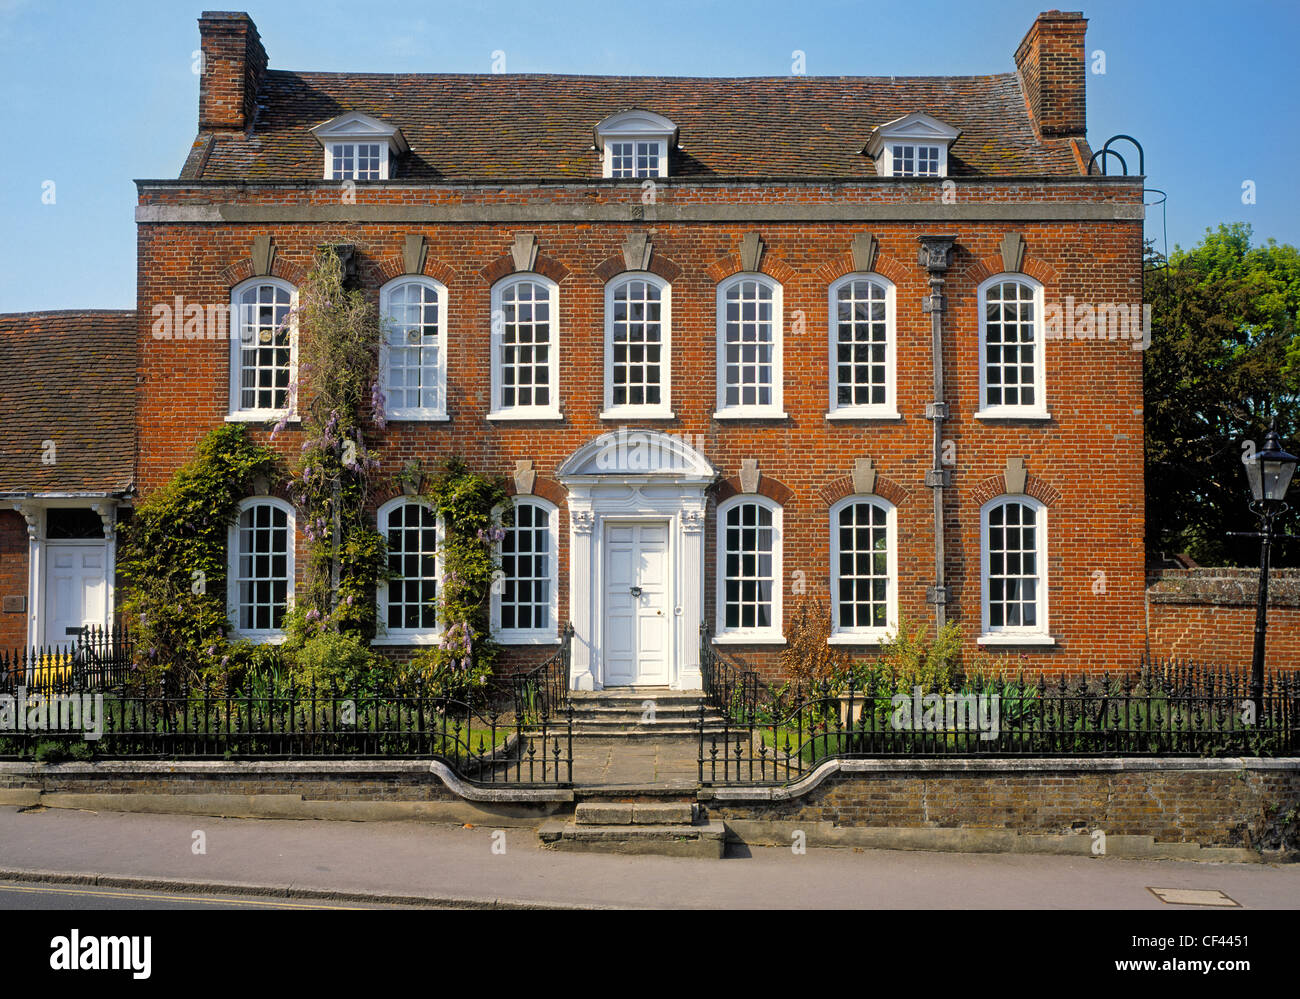 Exterior view of clarence house in thaxted stock photo for Exterior view of building